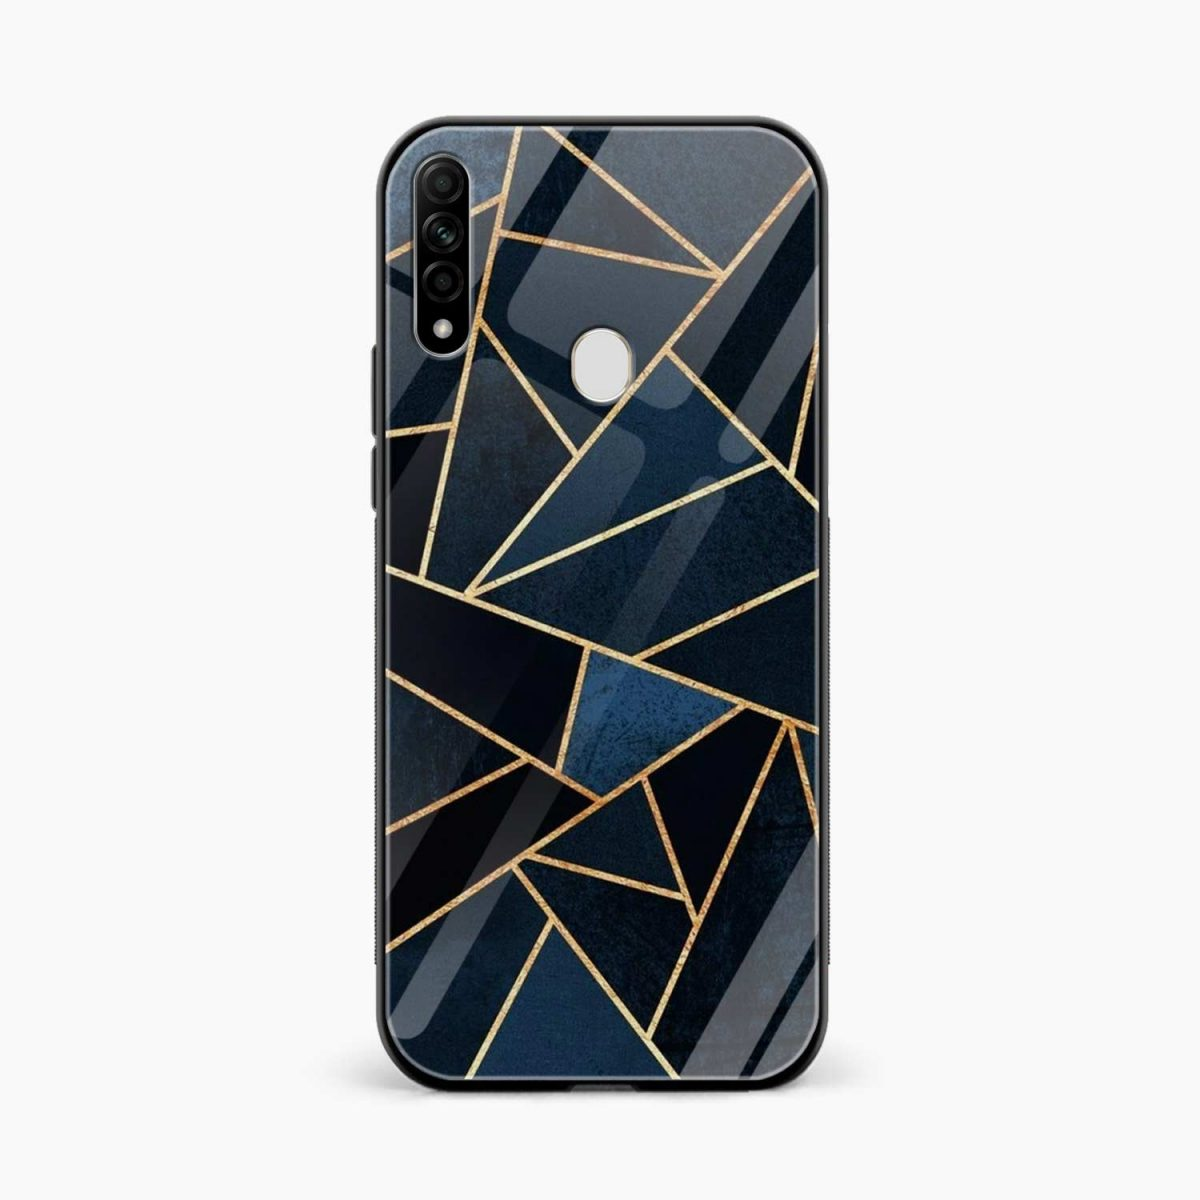 zig zag pattern front view oppo a31 back cover